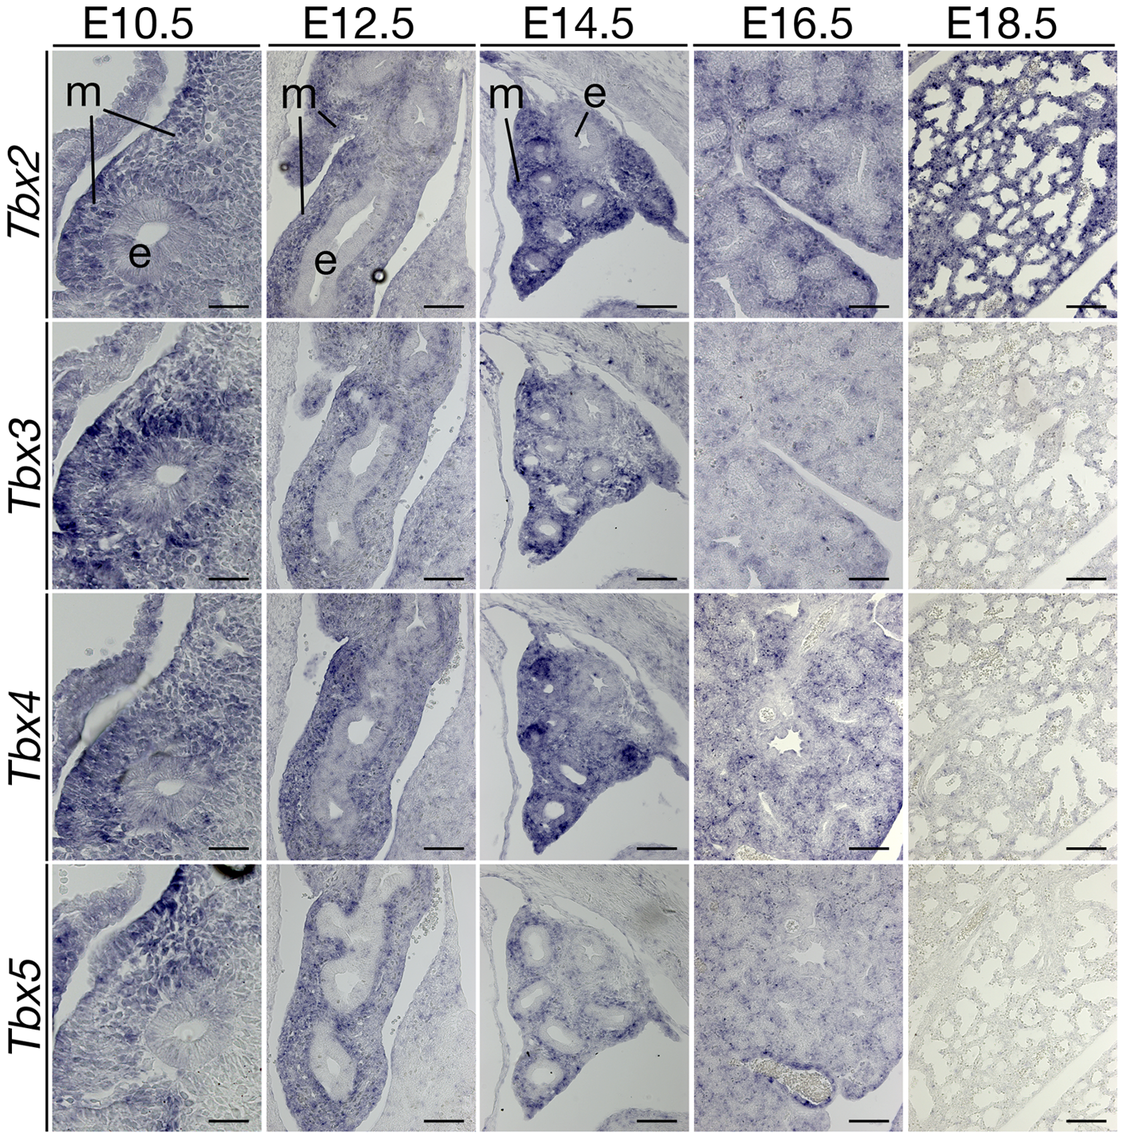 Expression analysis of T-box genes suggests a non-redundant role of <i>Tbx2</i> in late lung development.